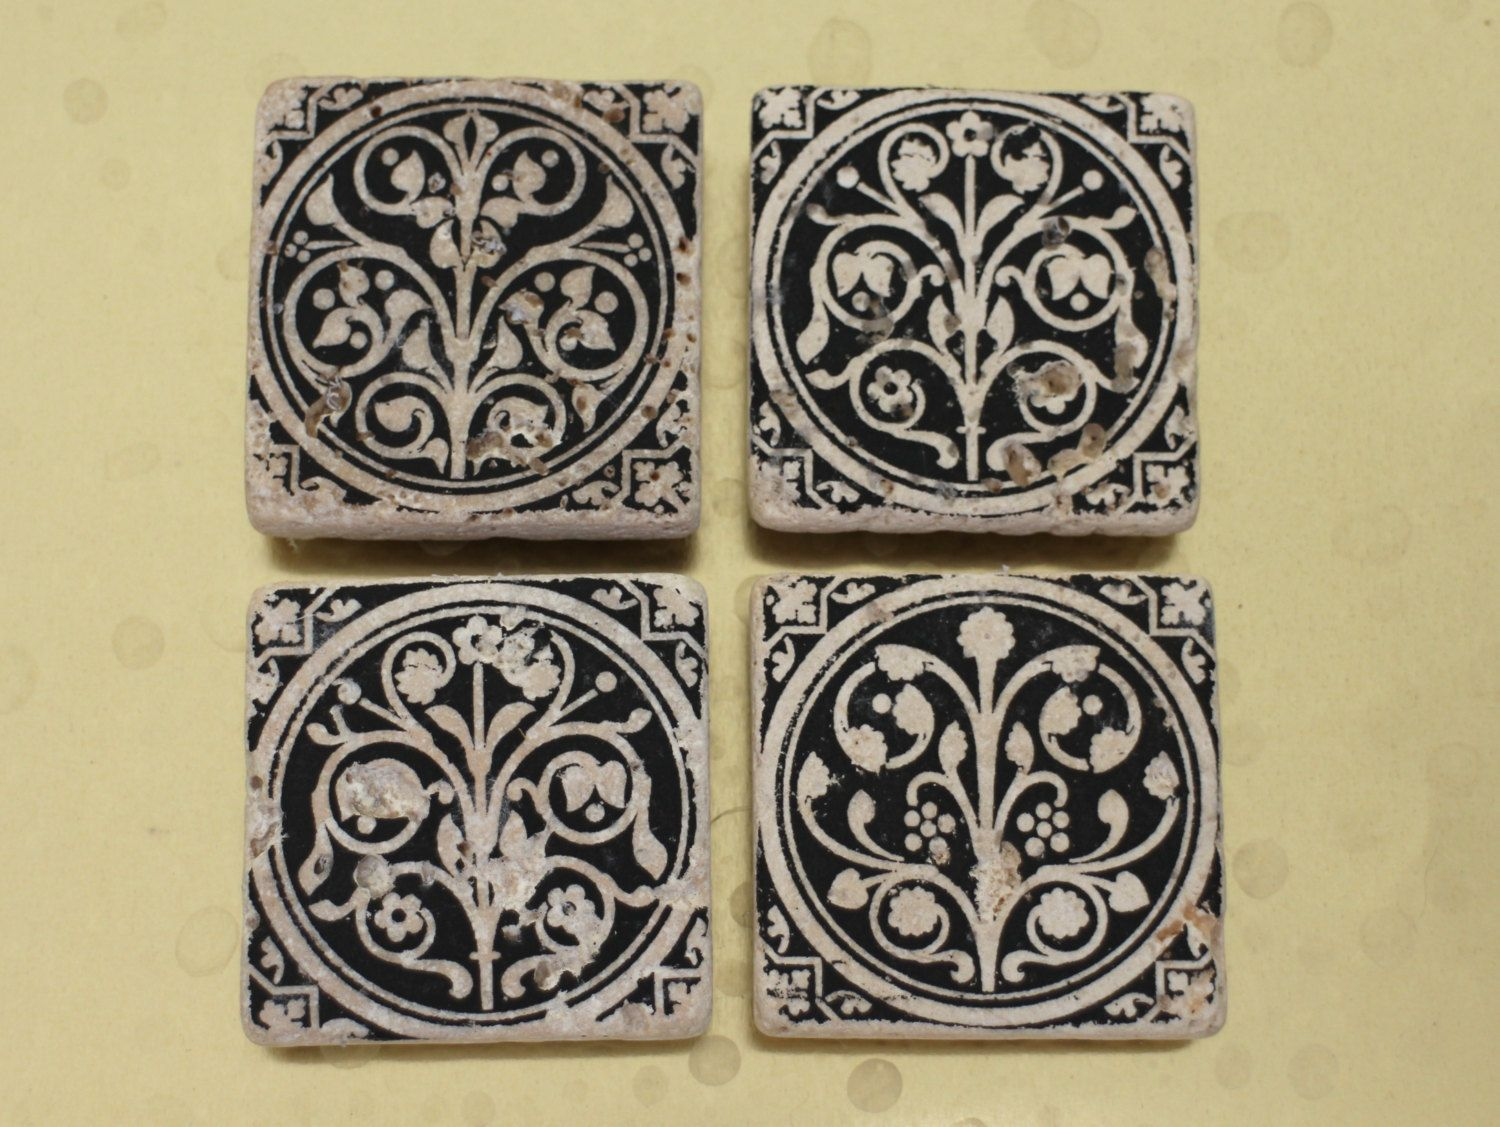 "Set of 4 2x2"" stone tile magnets featuring photo prints of the Sainte Chapelle medieval flowers in Paris France"